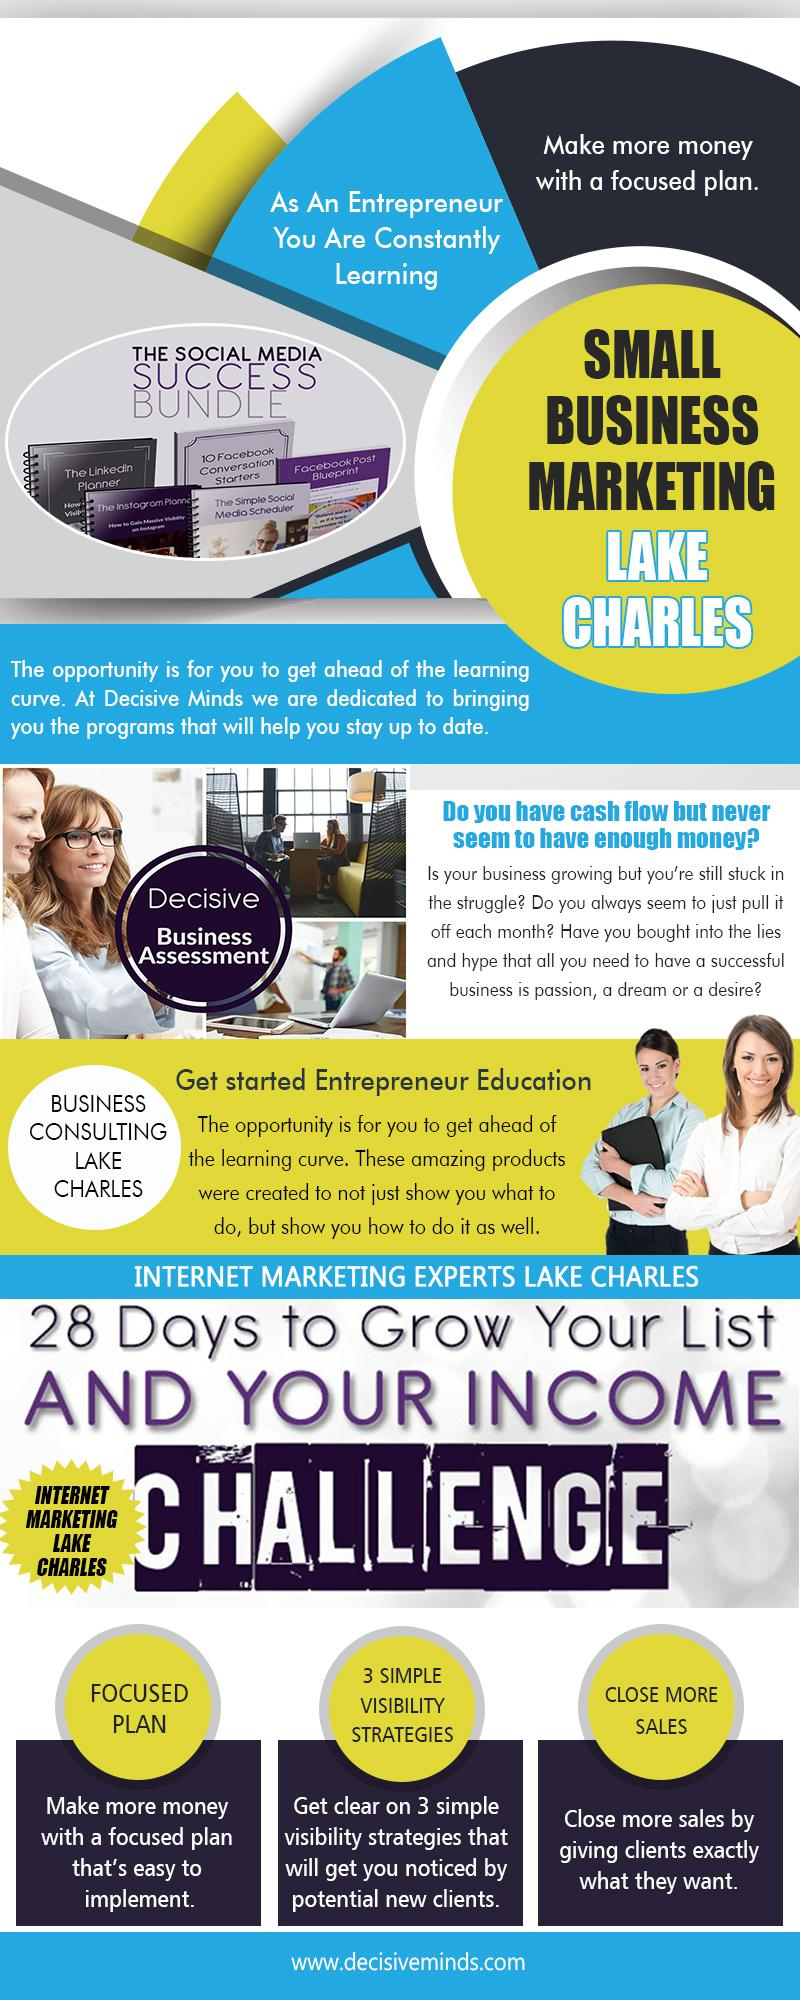 Internet Marketing Experts Lake Charles